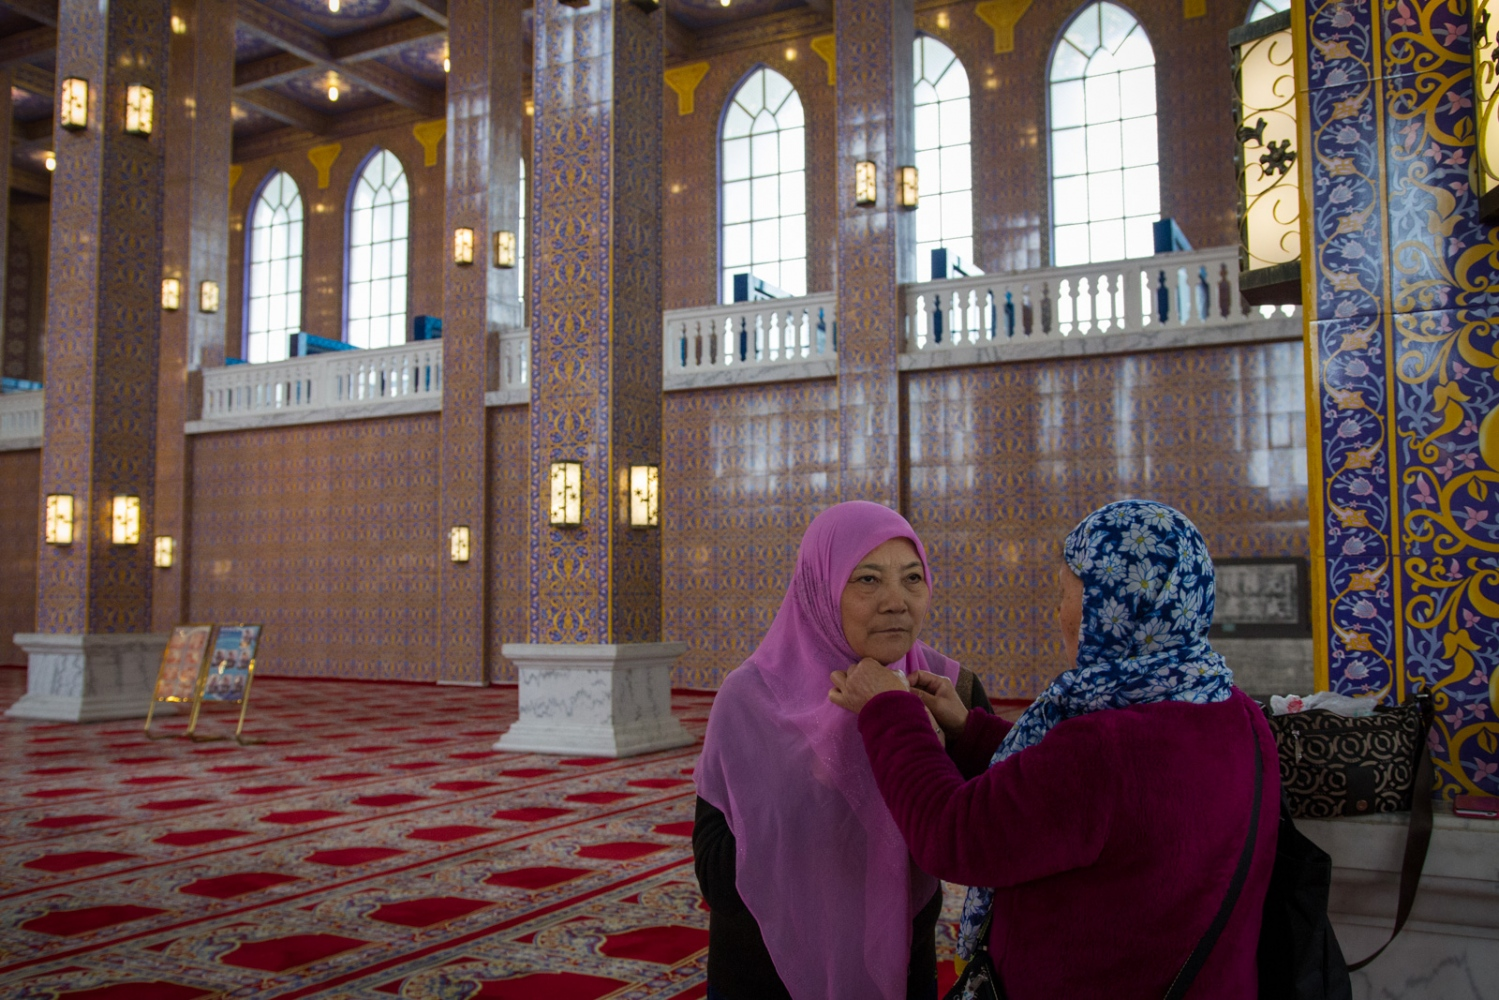 A Hui woman helps her friend to put on the headscarf in the Golden Palace where all women visitors are asked to wear headscarves. Although being Hui, the two women said they don't have to wear headscarf at home in Zhengzhou, Henan Province.